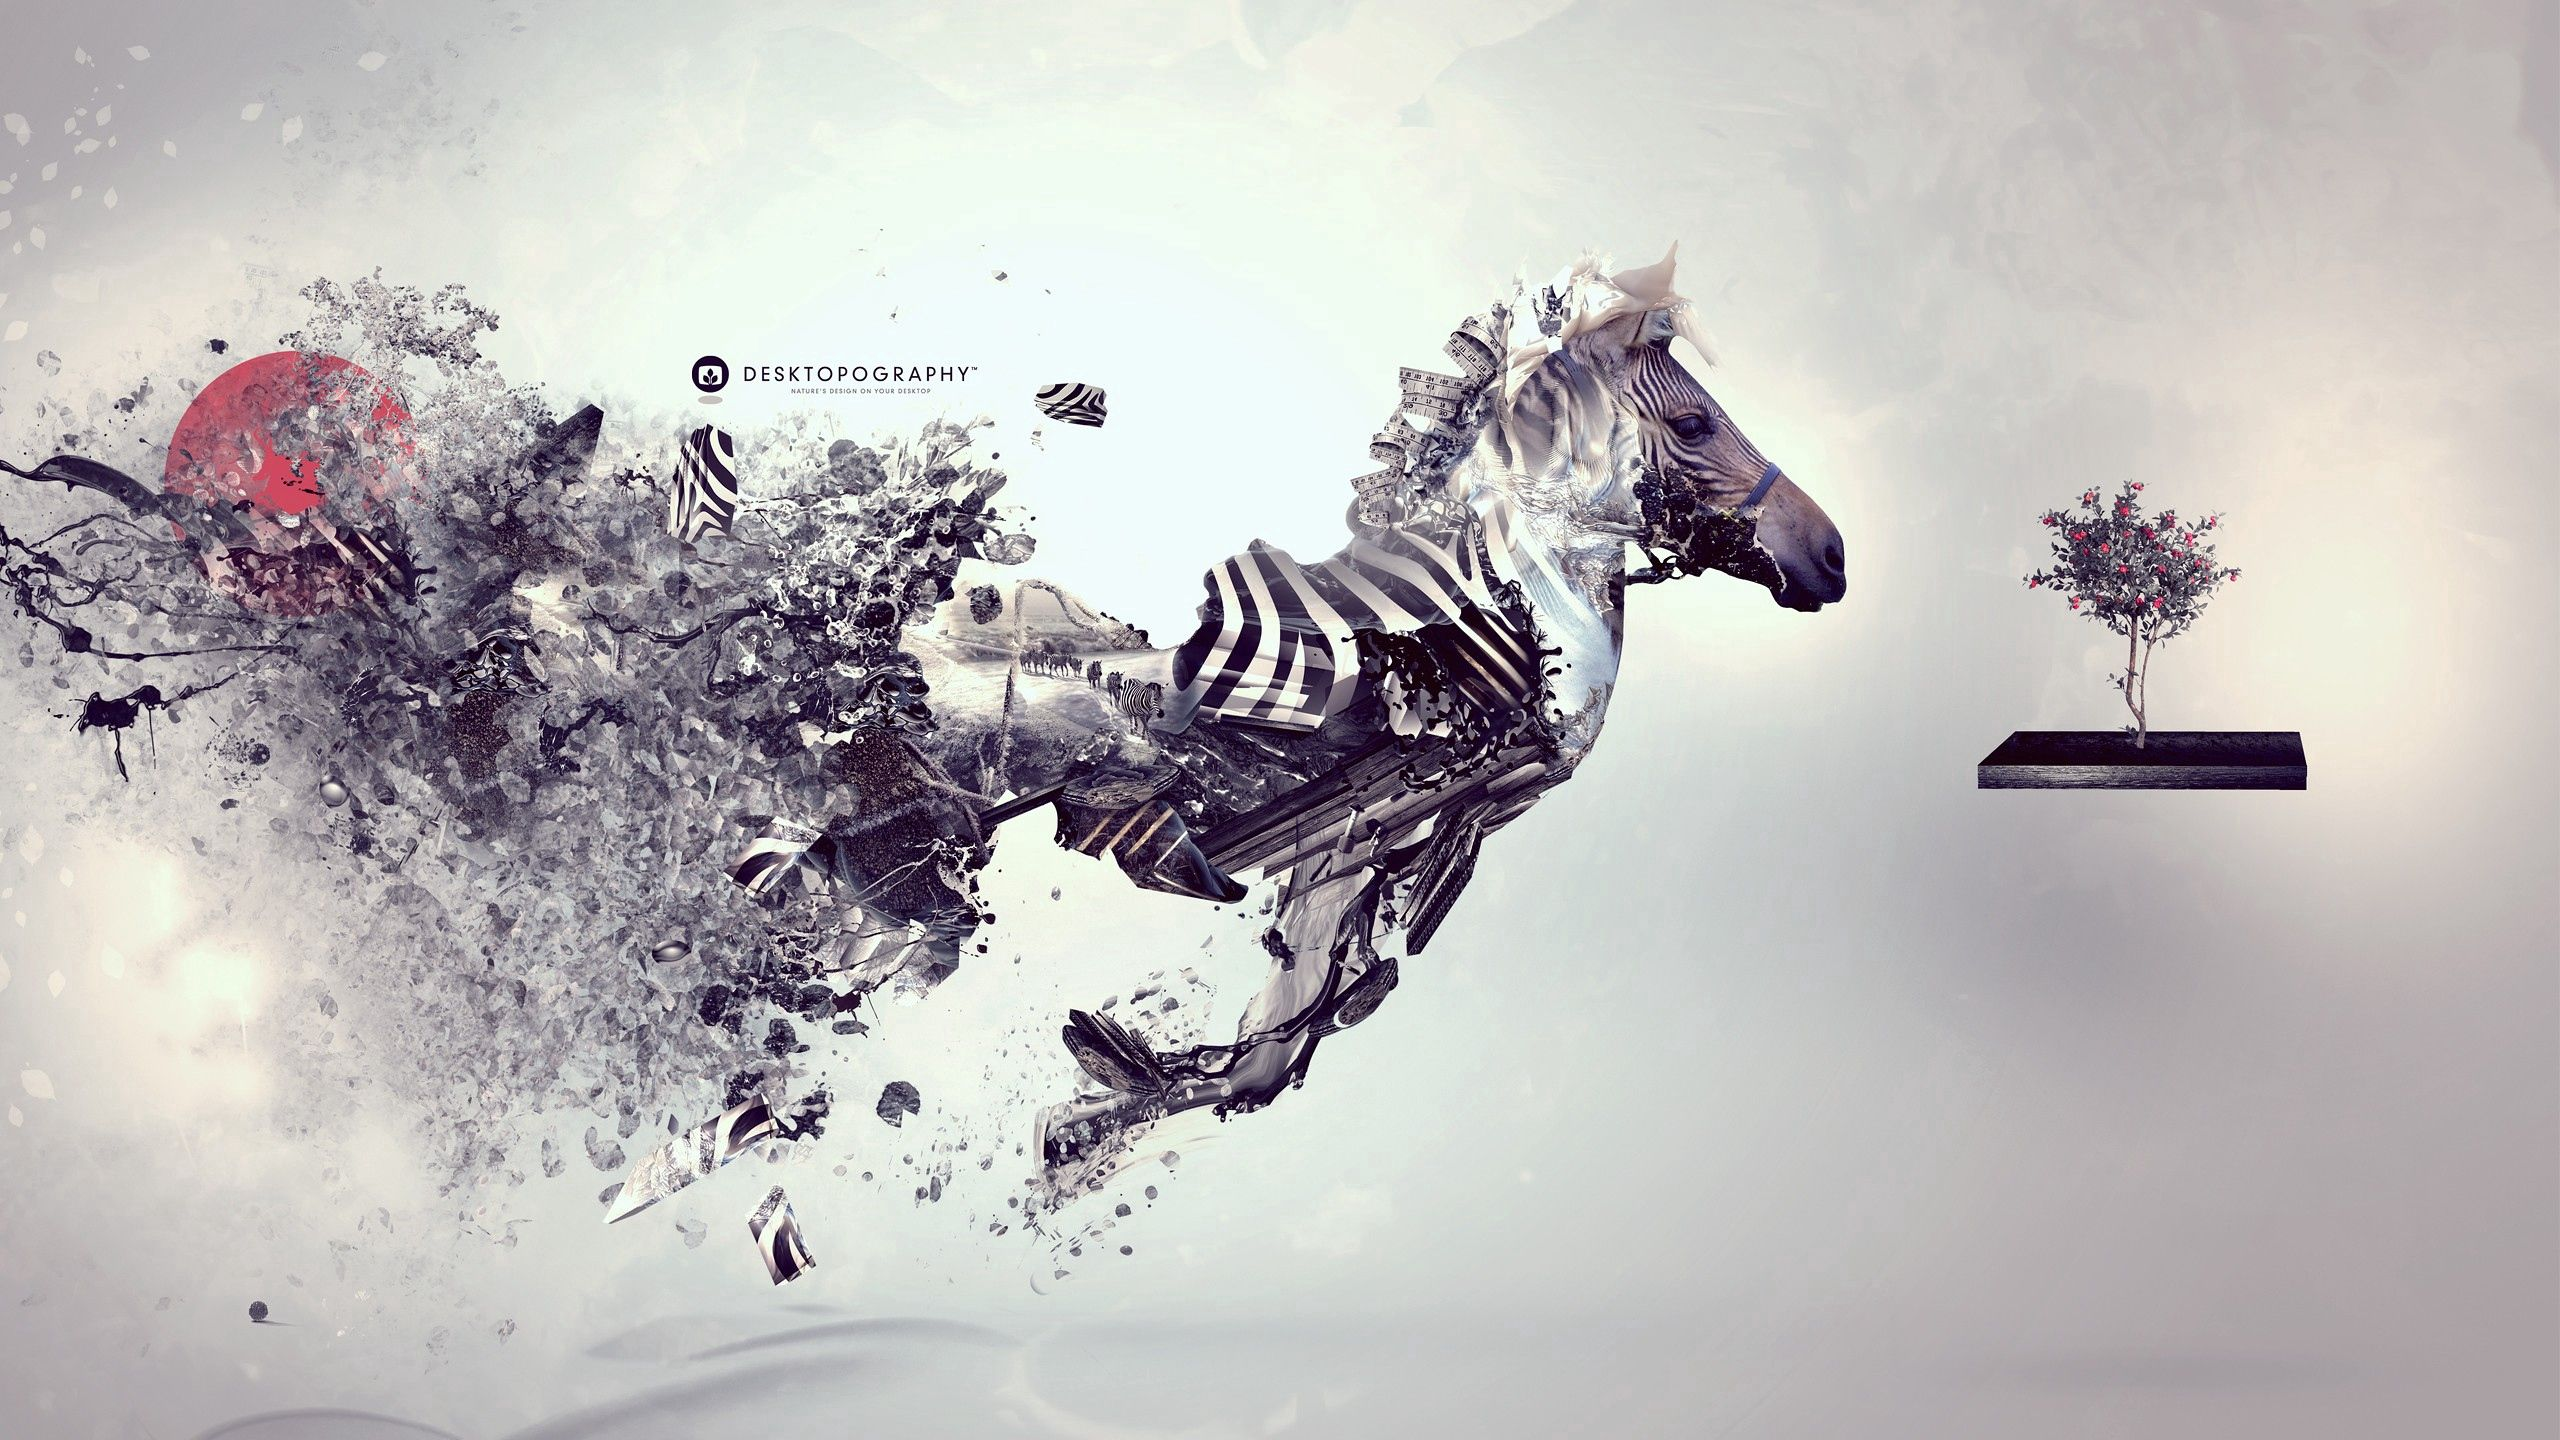 131042 download wallpaper Abstract, Zebra, Surrealism, Inspiration screensavers and pictures for free